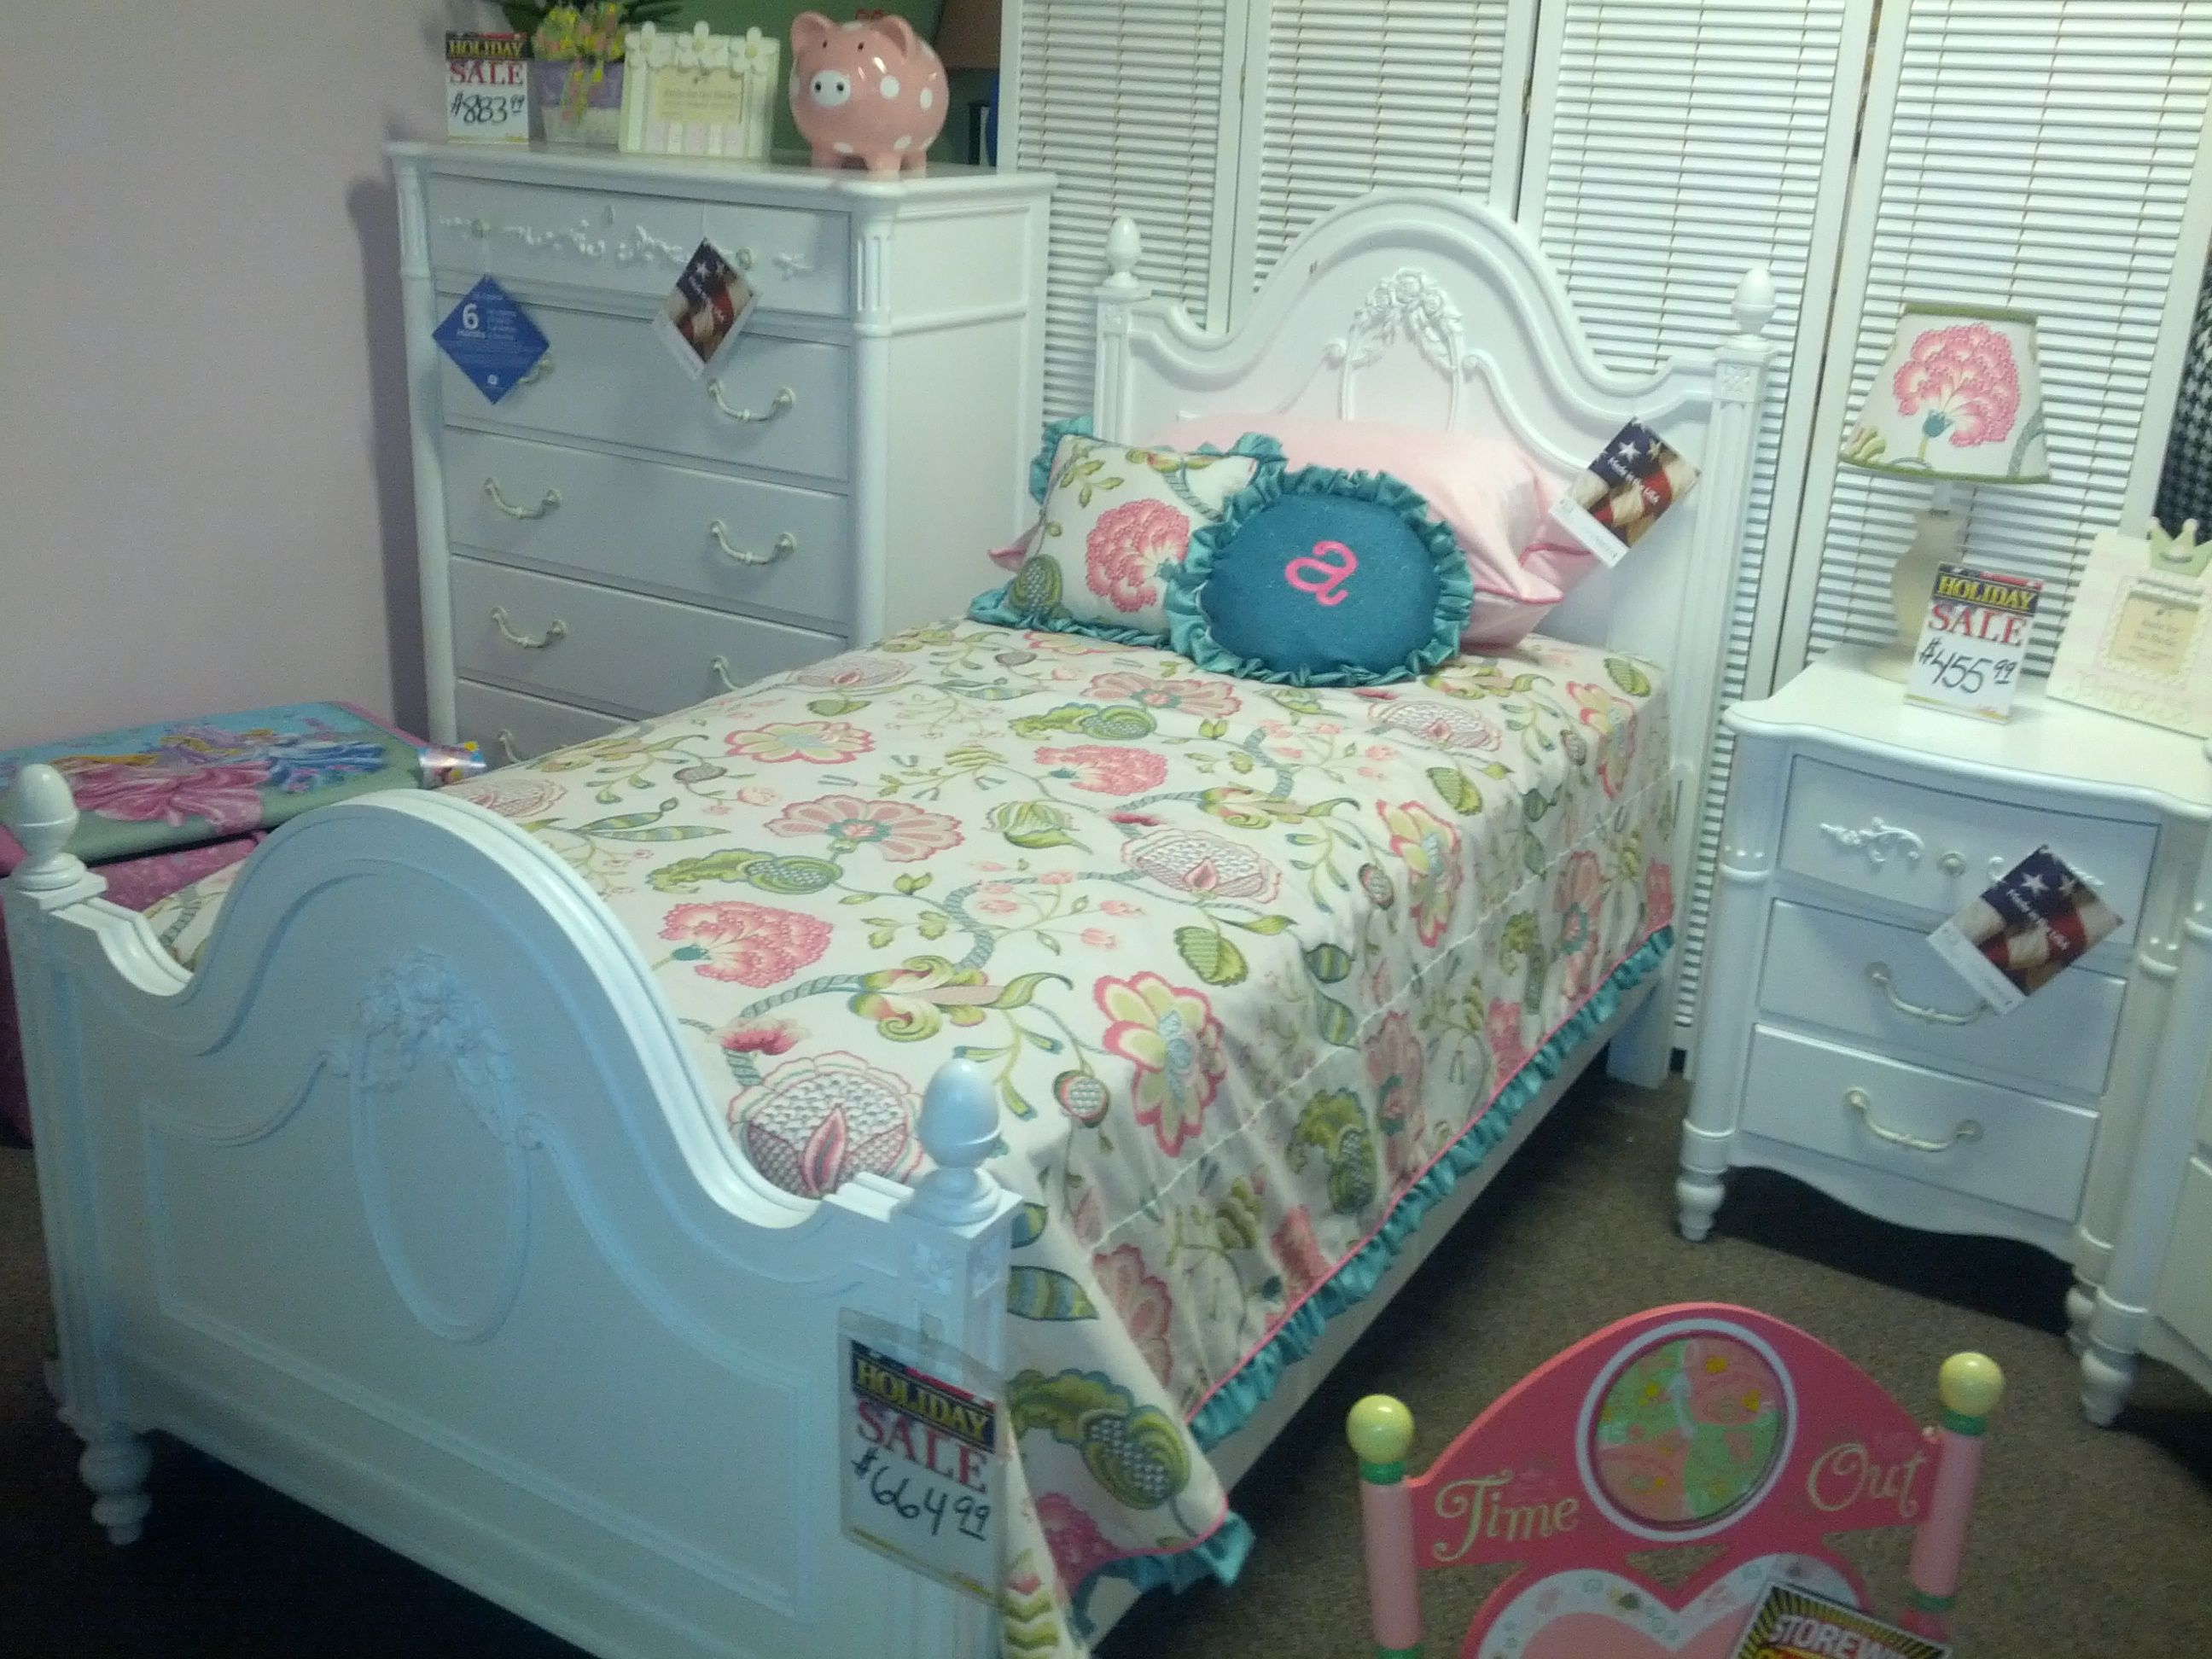 Arabella Floral twin bedding on Young America furniture at Kids N